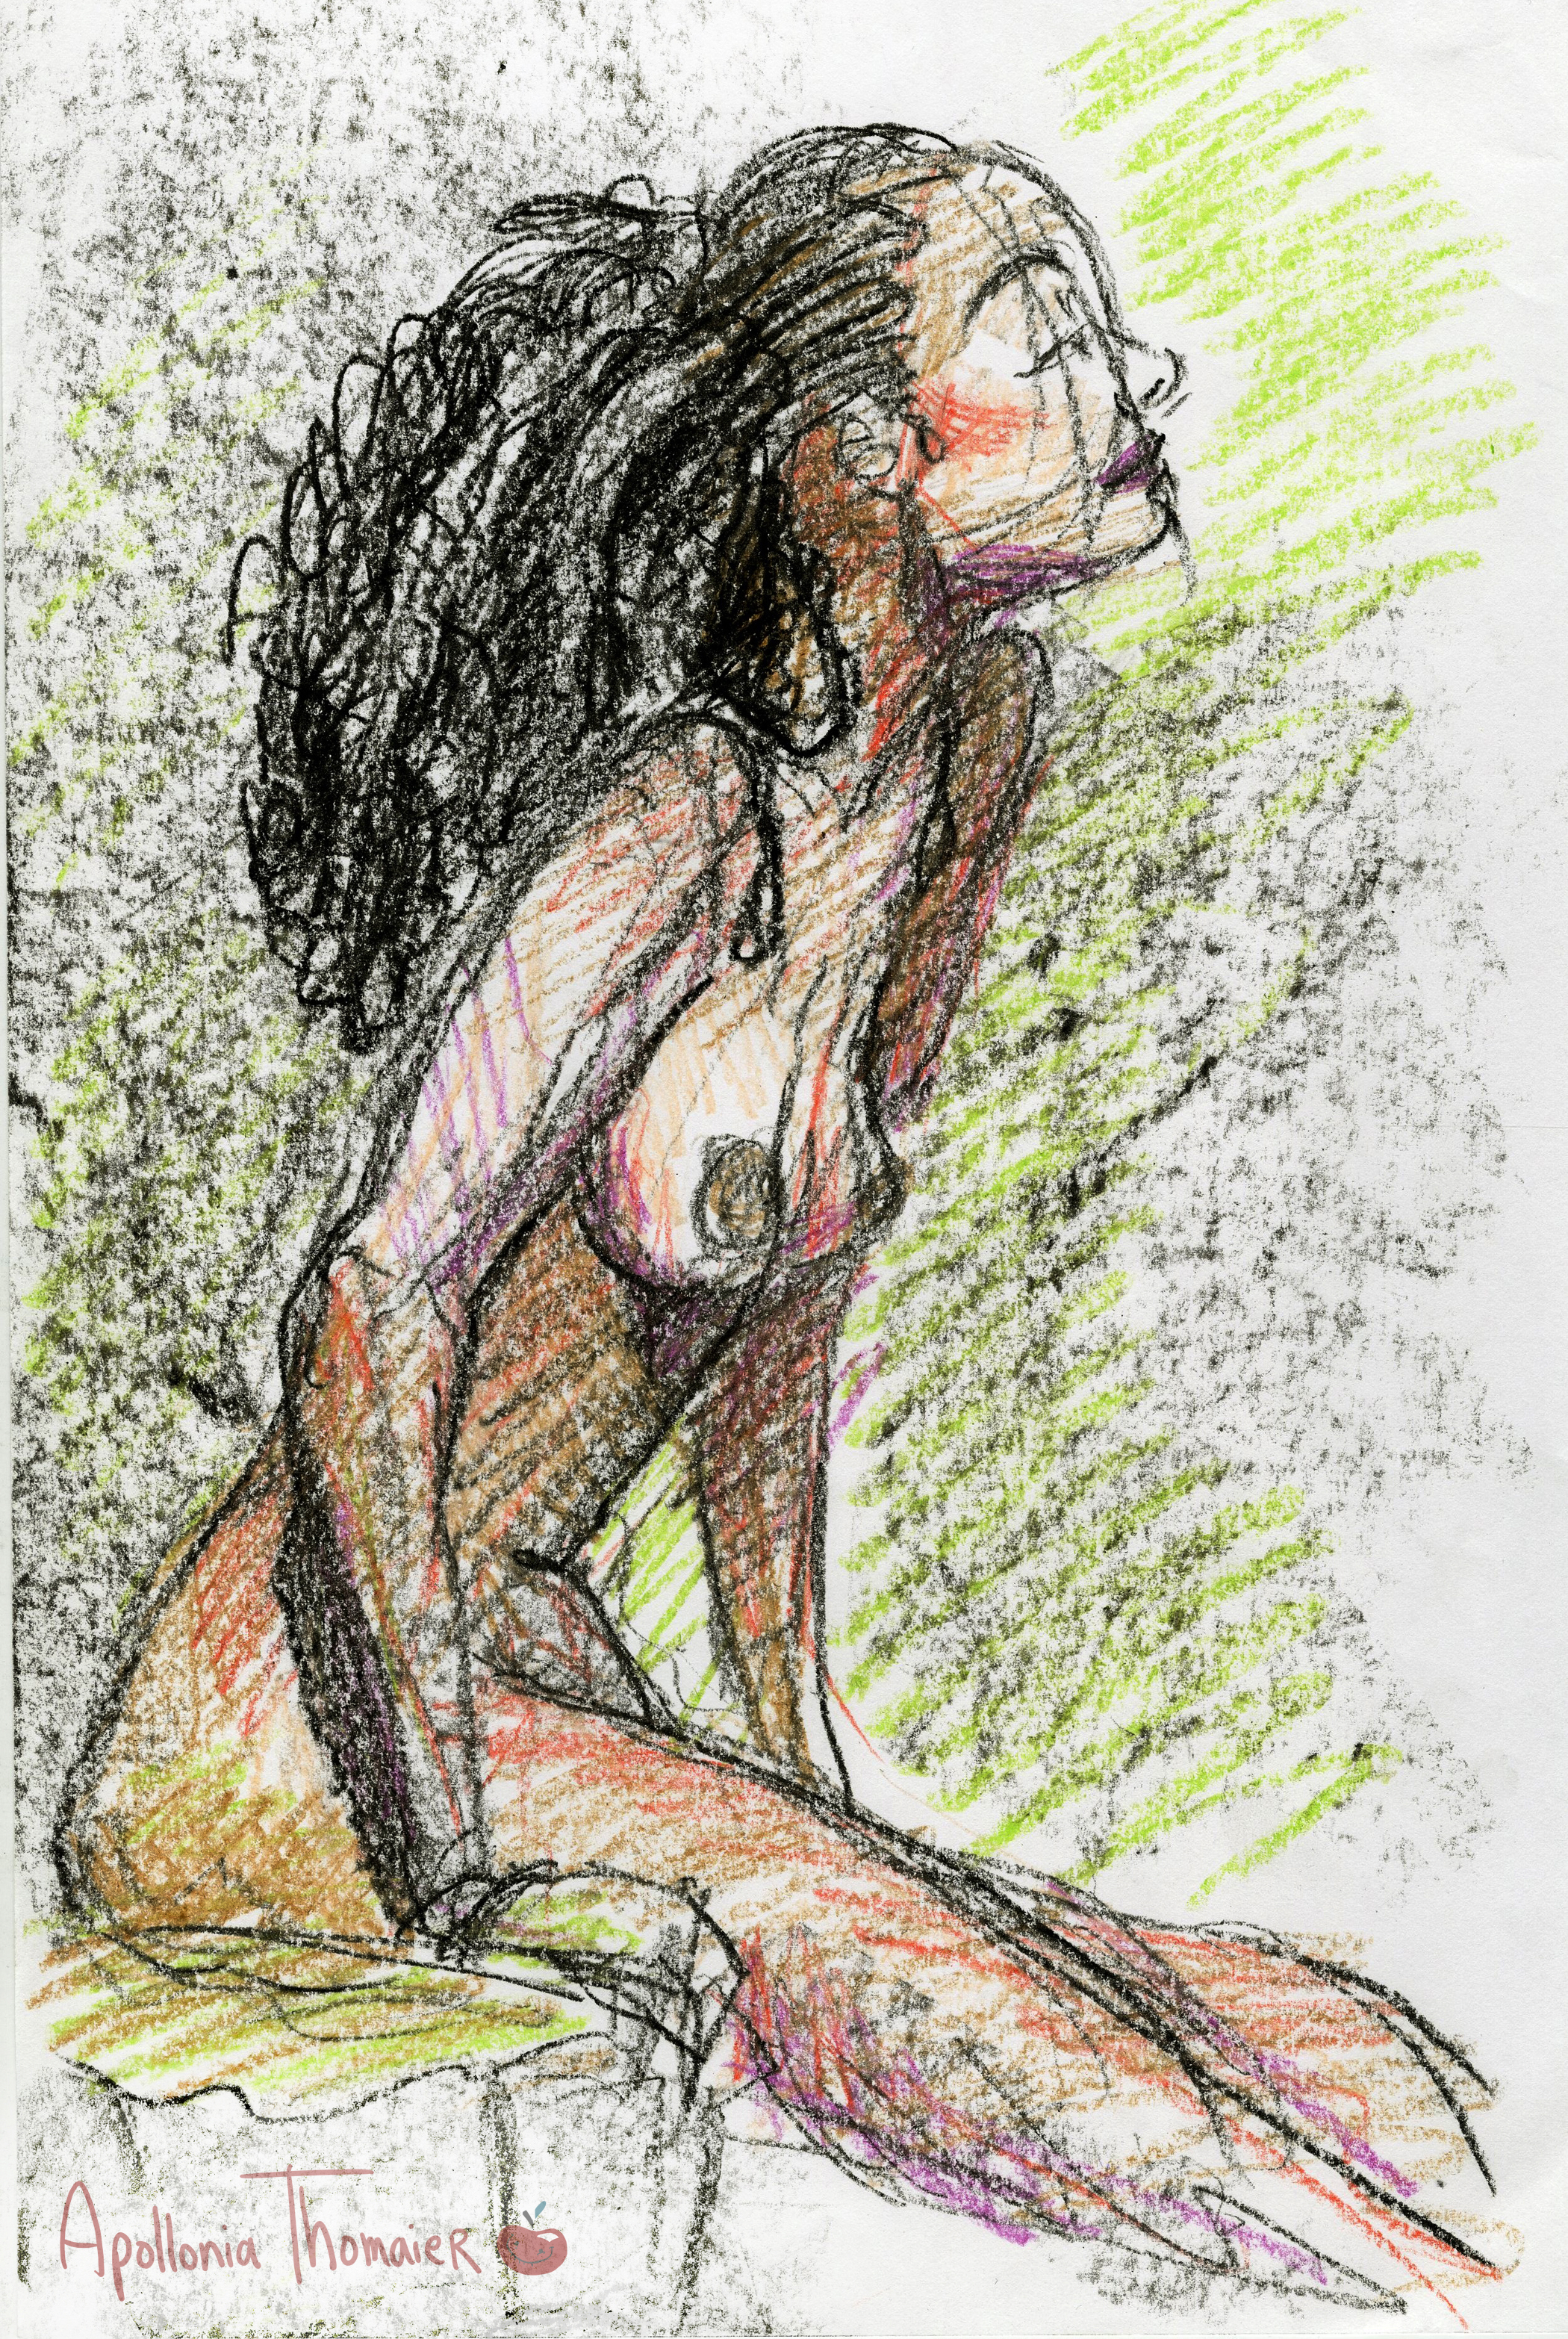 10 minute pose Medium: crayon